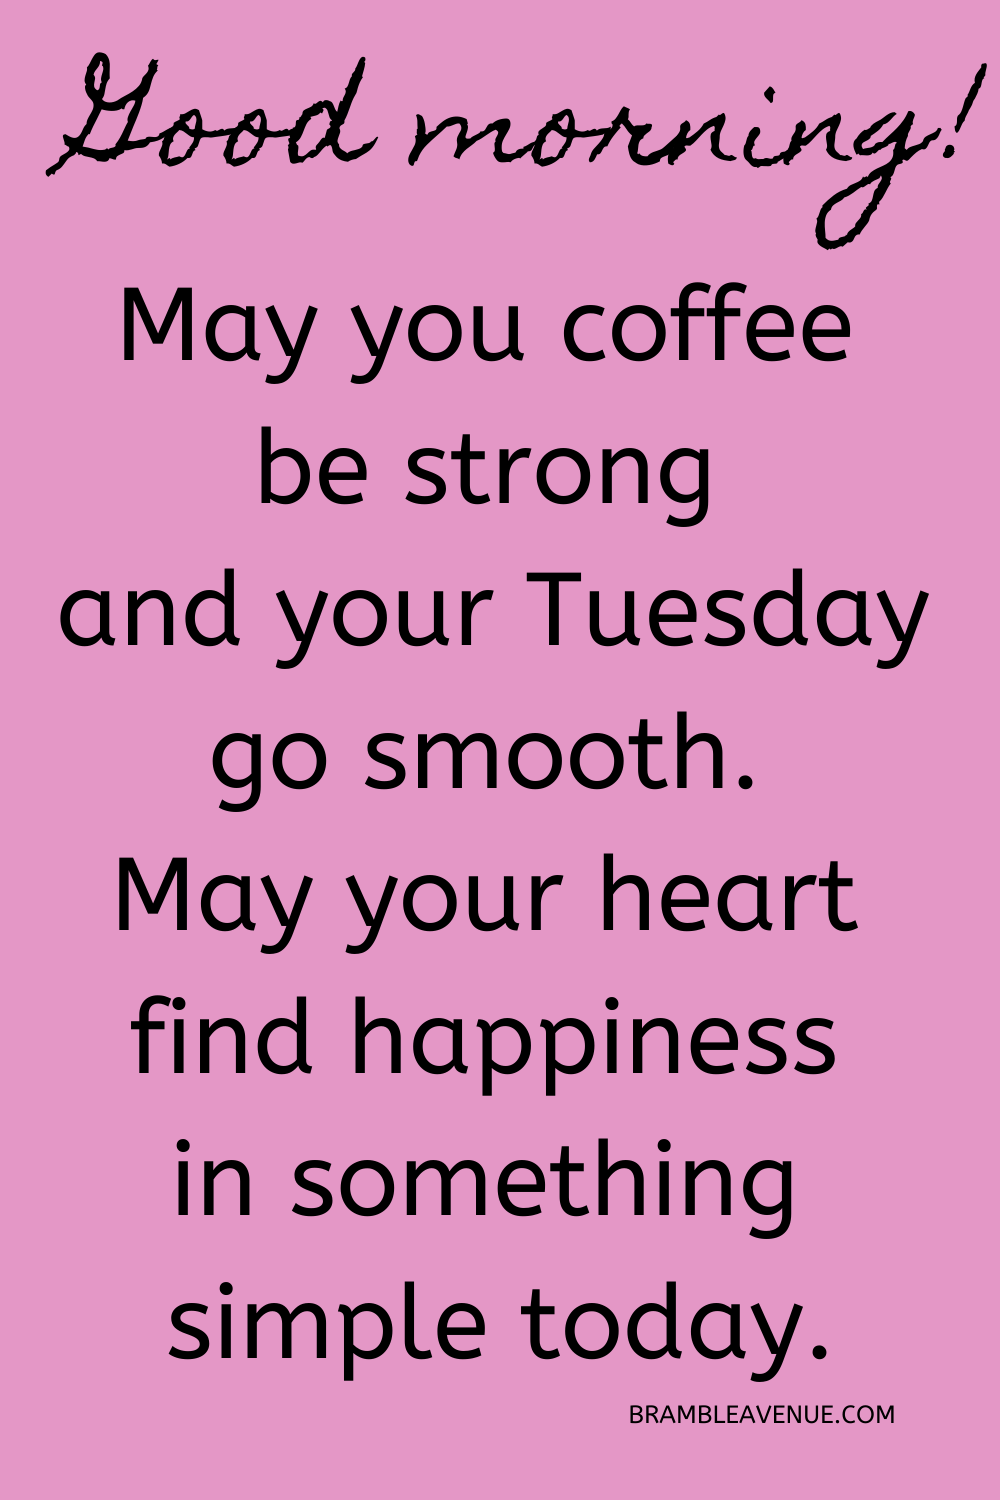 Tuesday Morning Quotes Bramble Avenue Happy Tuesday Quotes Morning Motivation Quotes Tuesday Quotes Good Morning